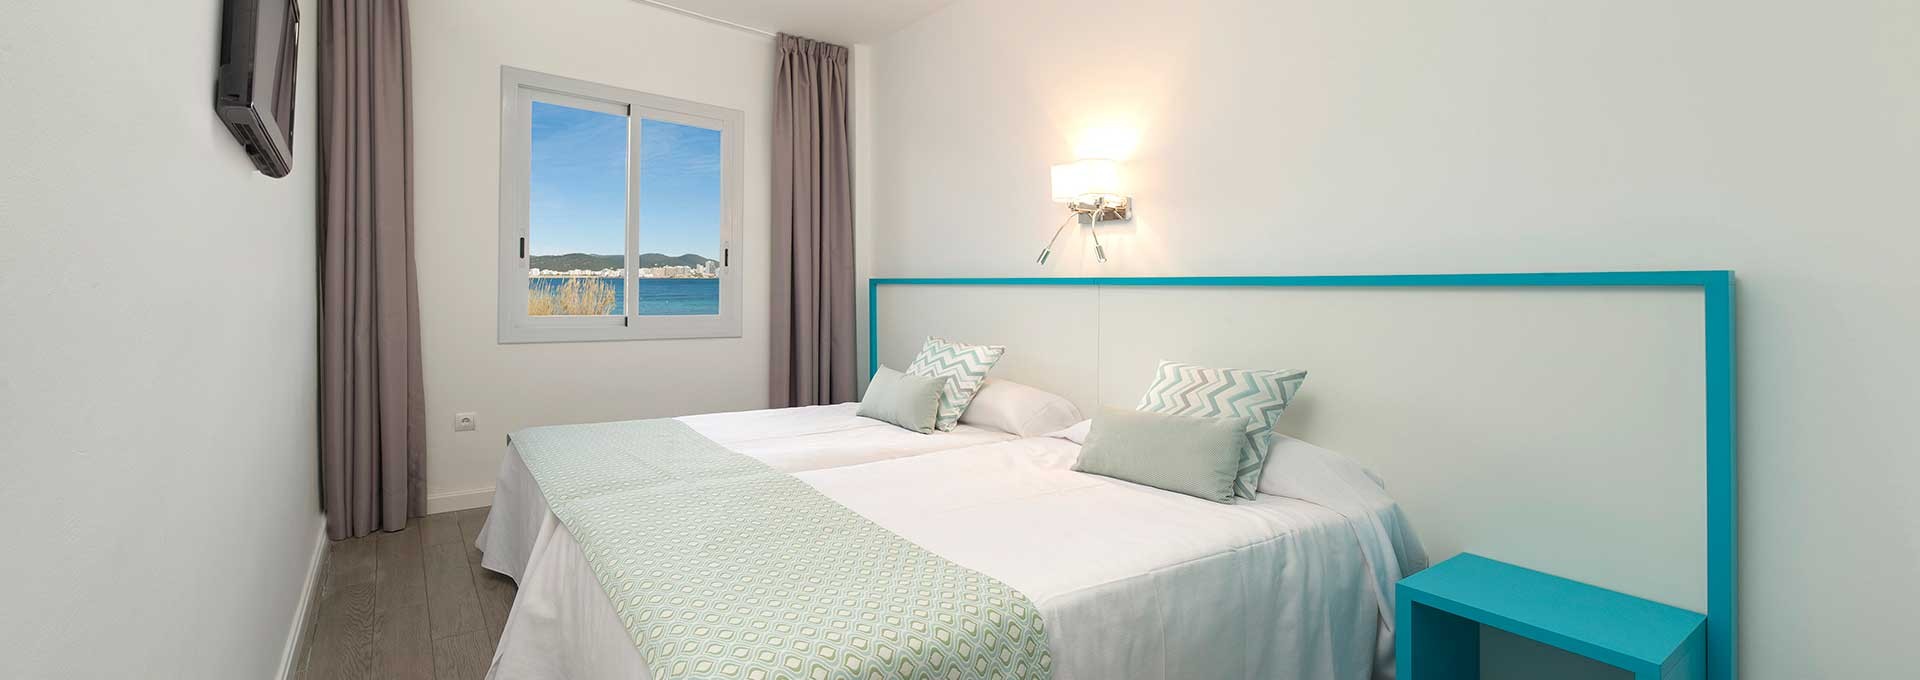 Apartamentos de lujo en San Antonio, Ibiza - The Beach Star, Grupo Star Resorts